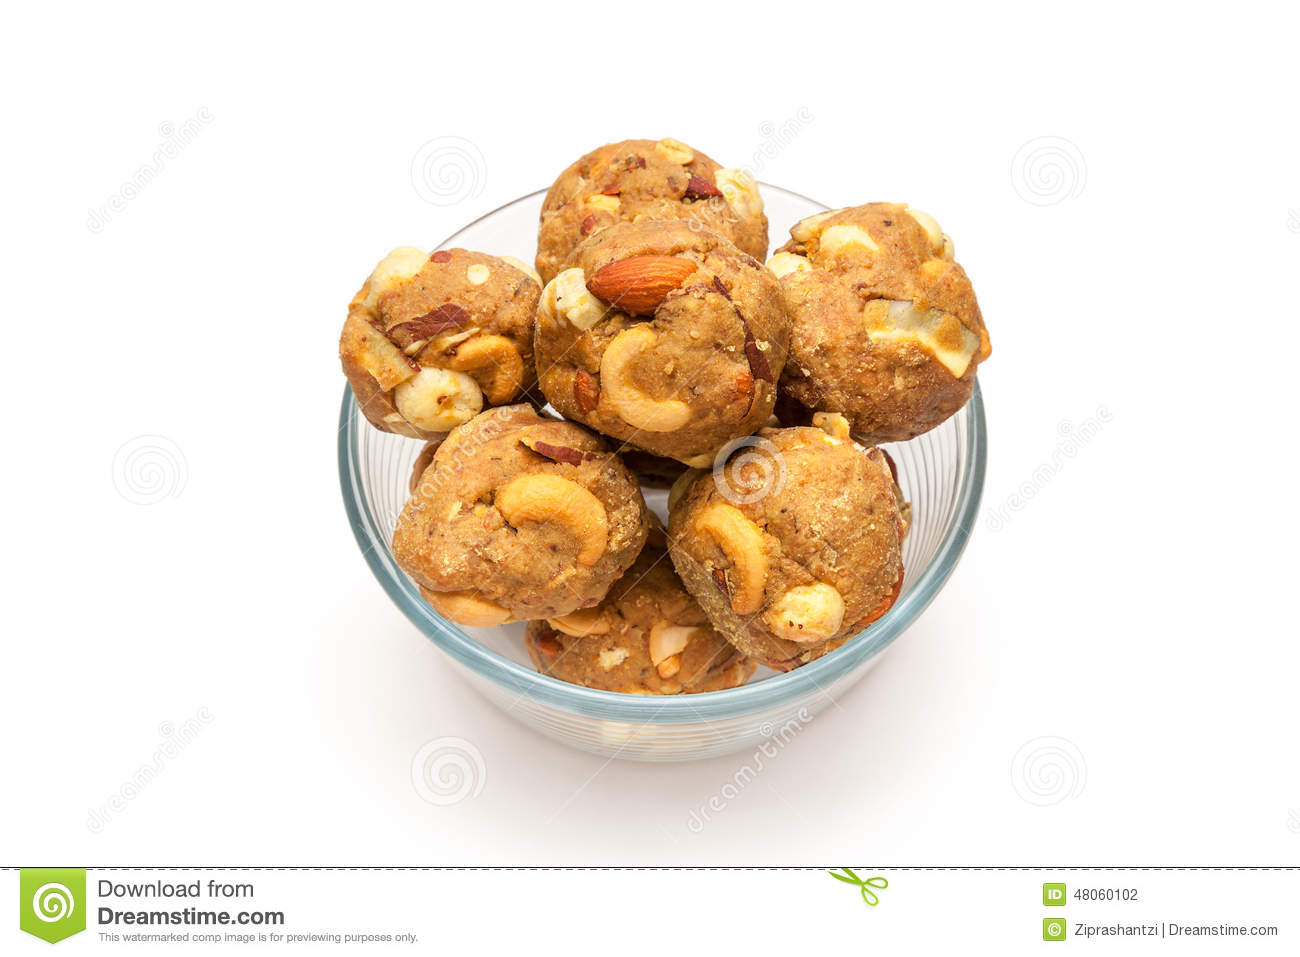 India homemade sweet dry fruits laddoo in glass bowl